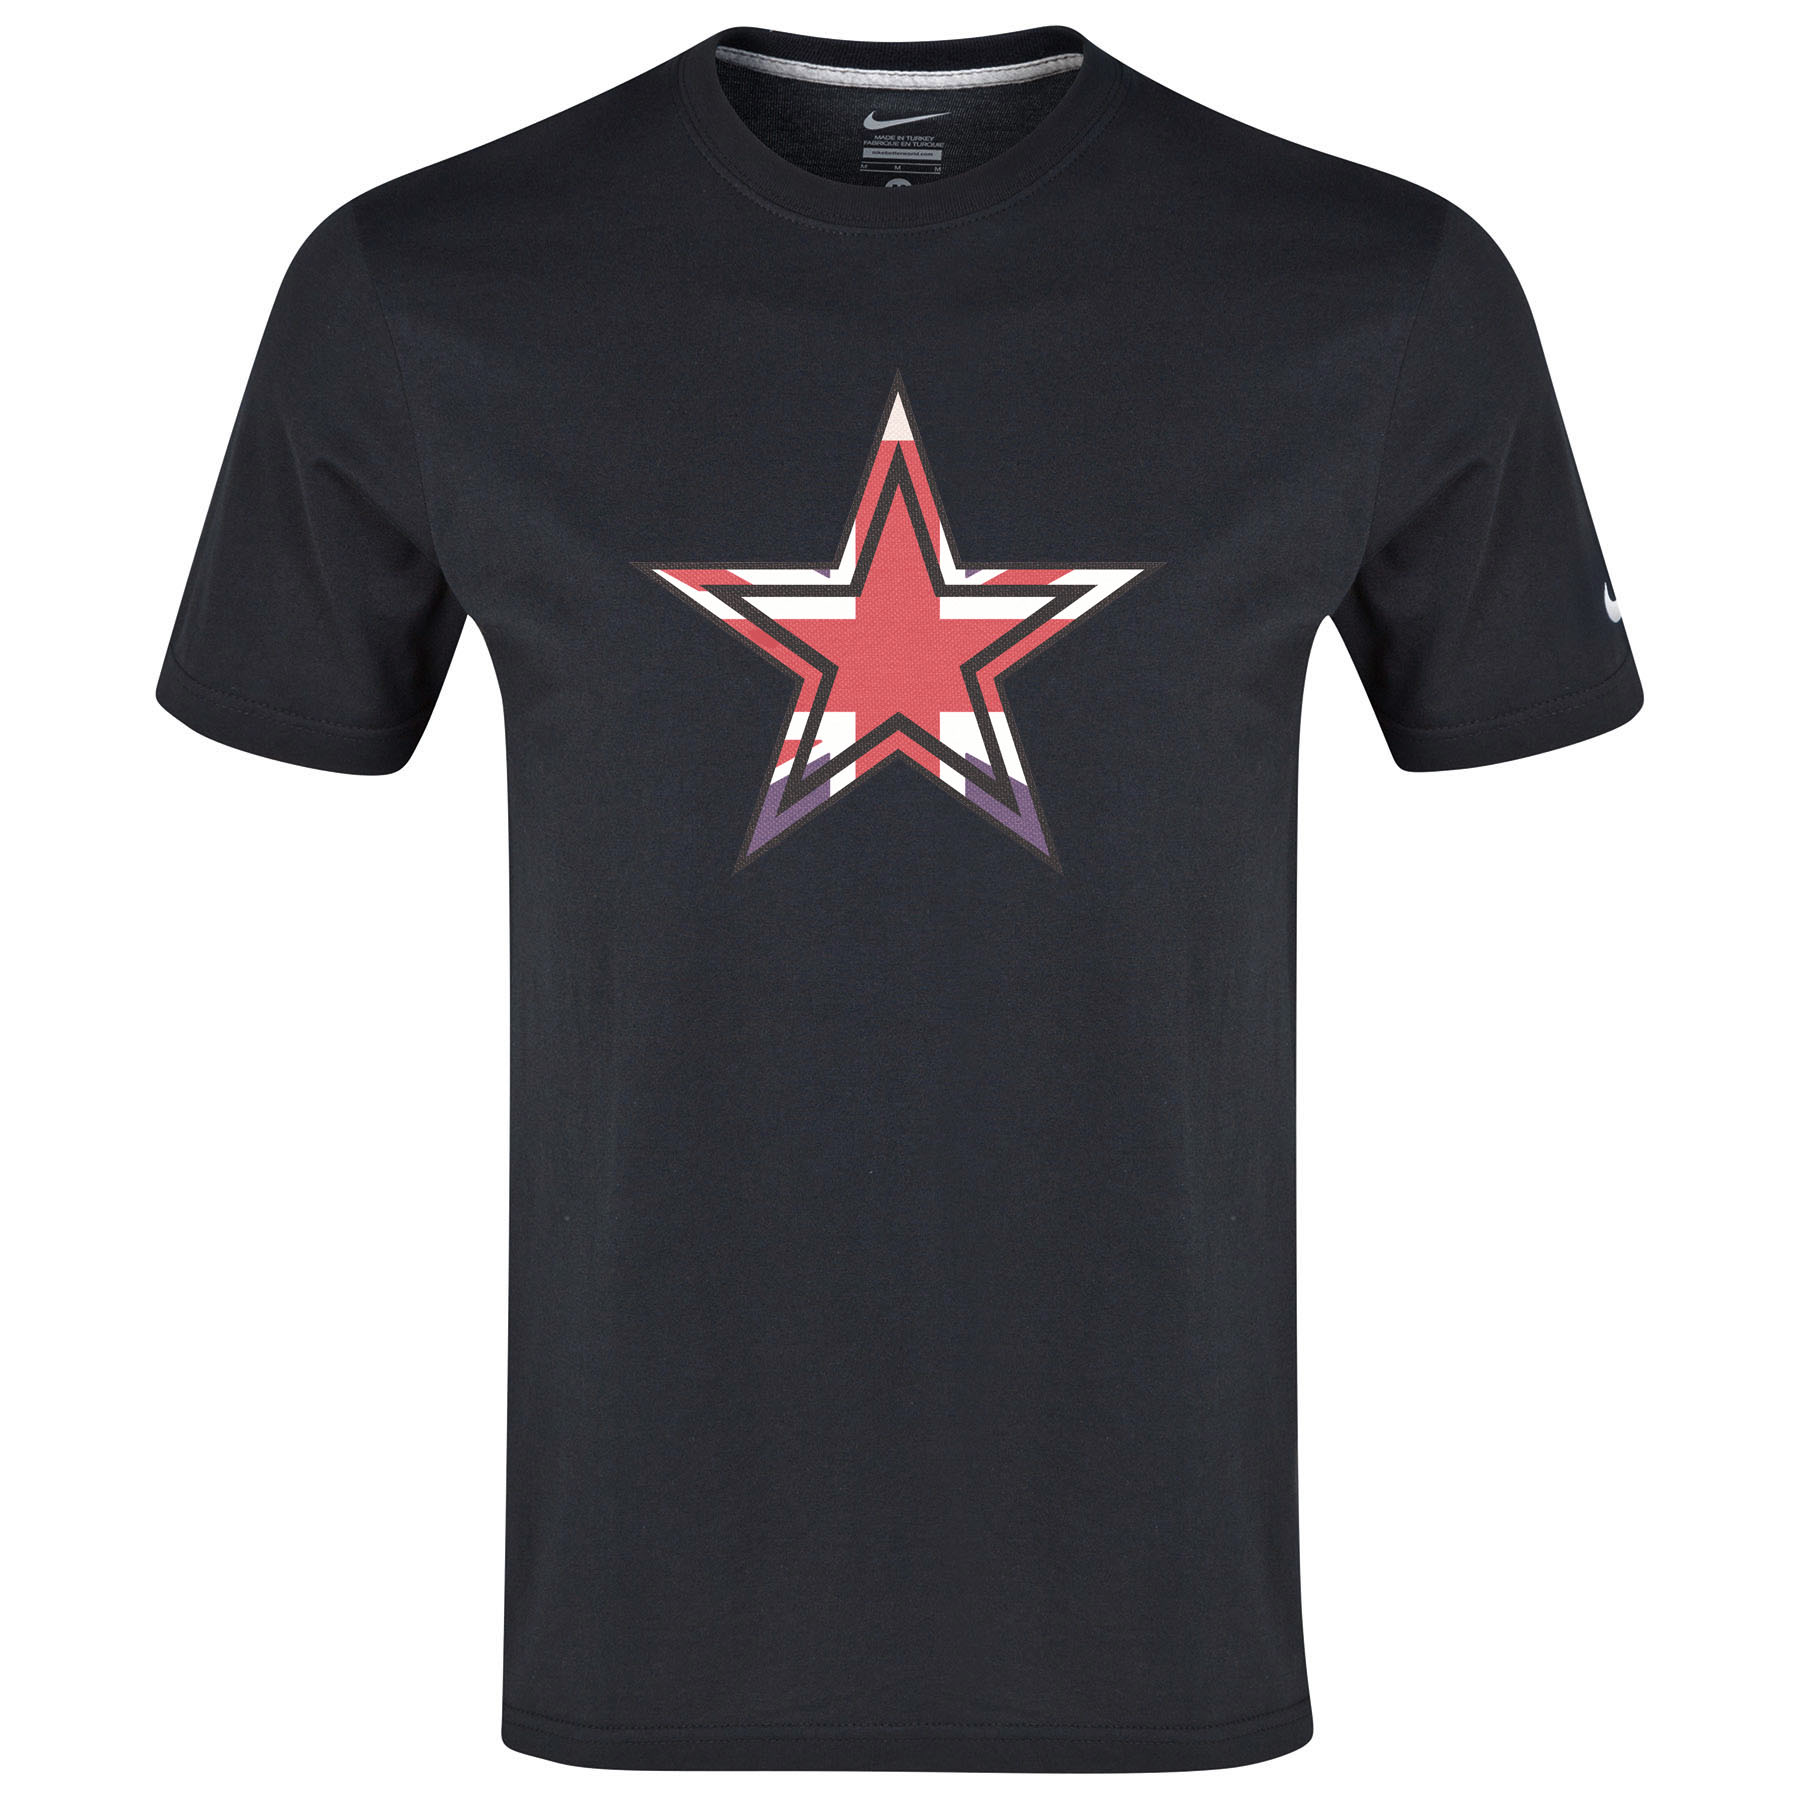 Dallas Cowboys Nike ISG Union Jack T-Shirt Black